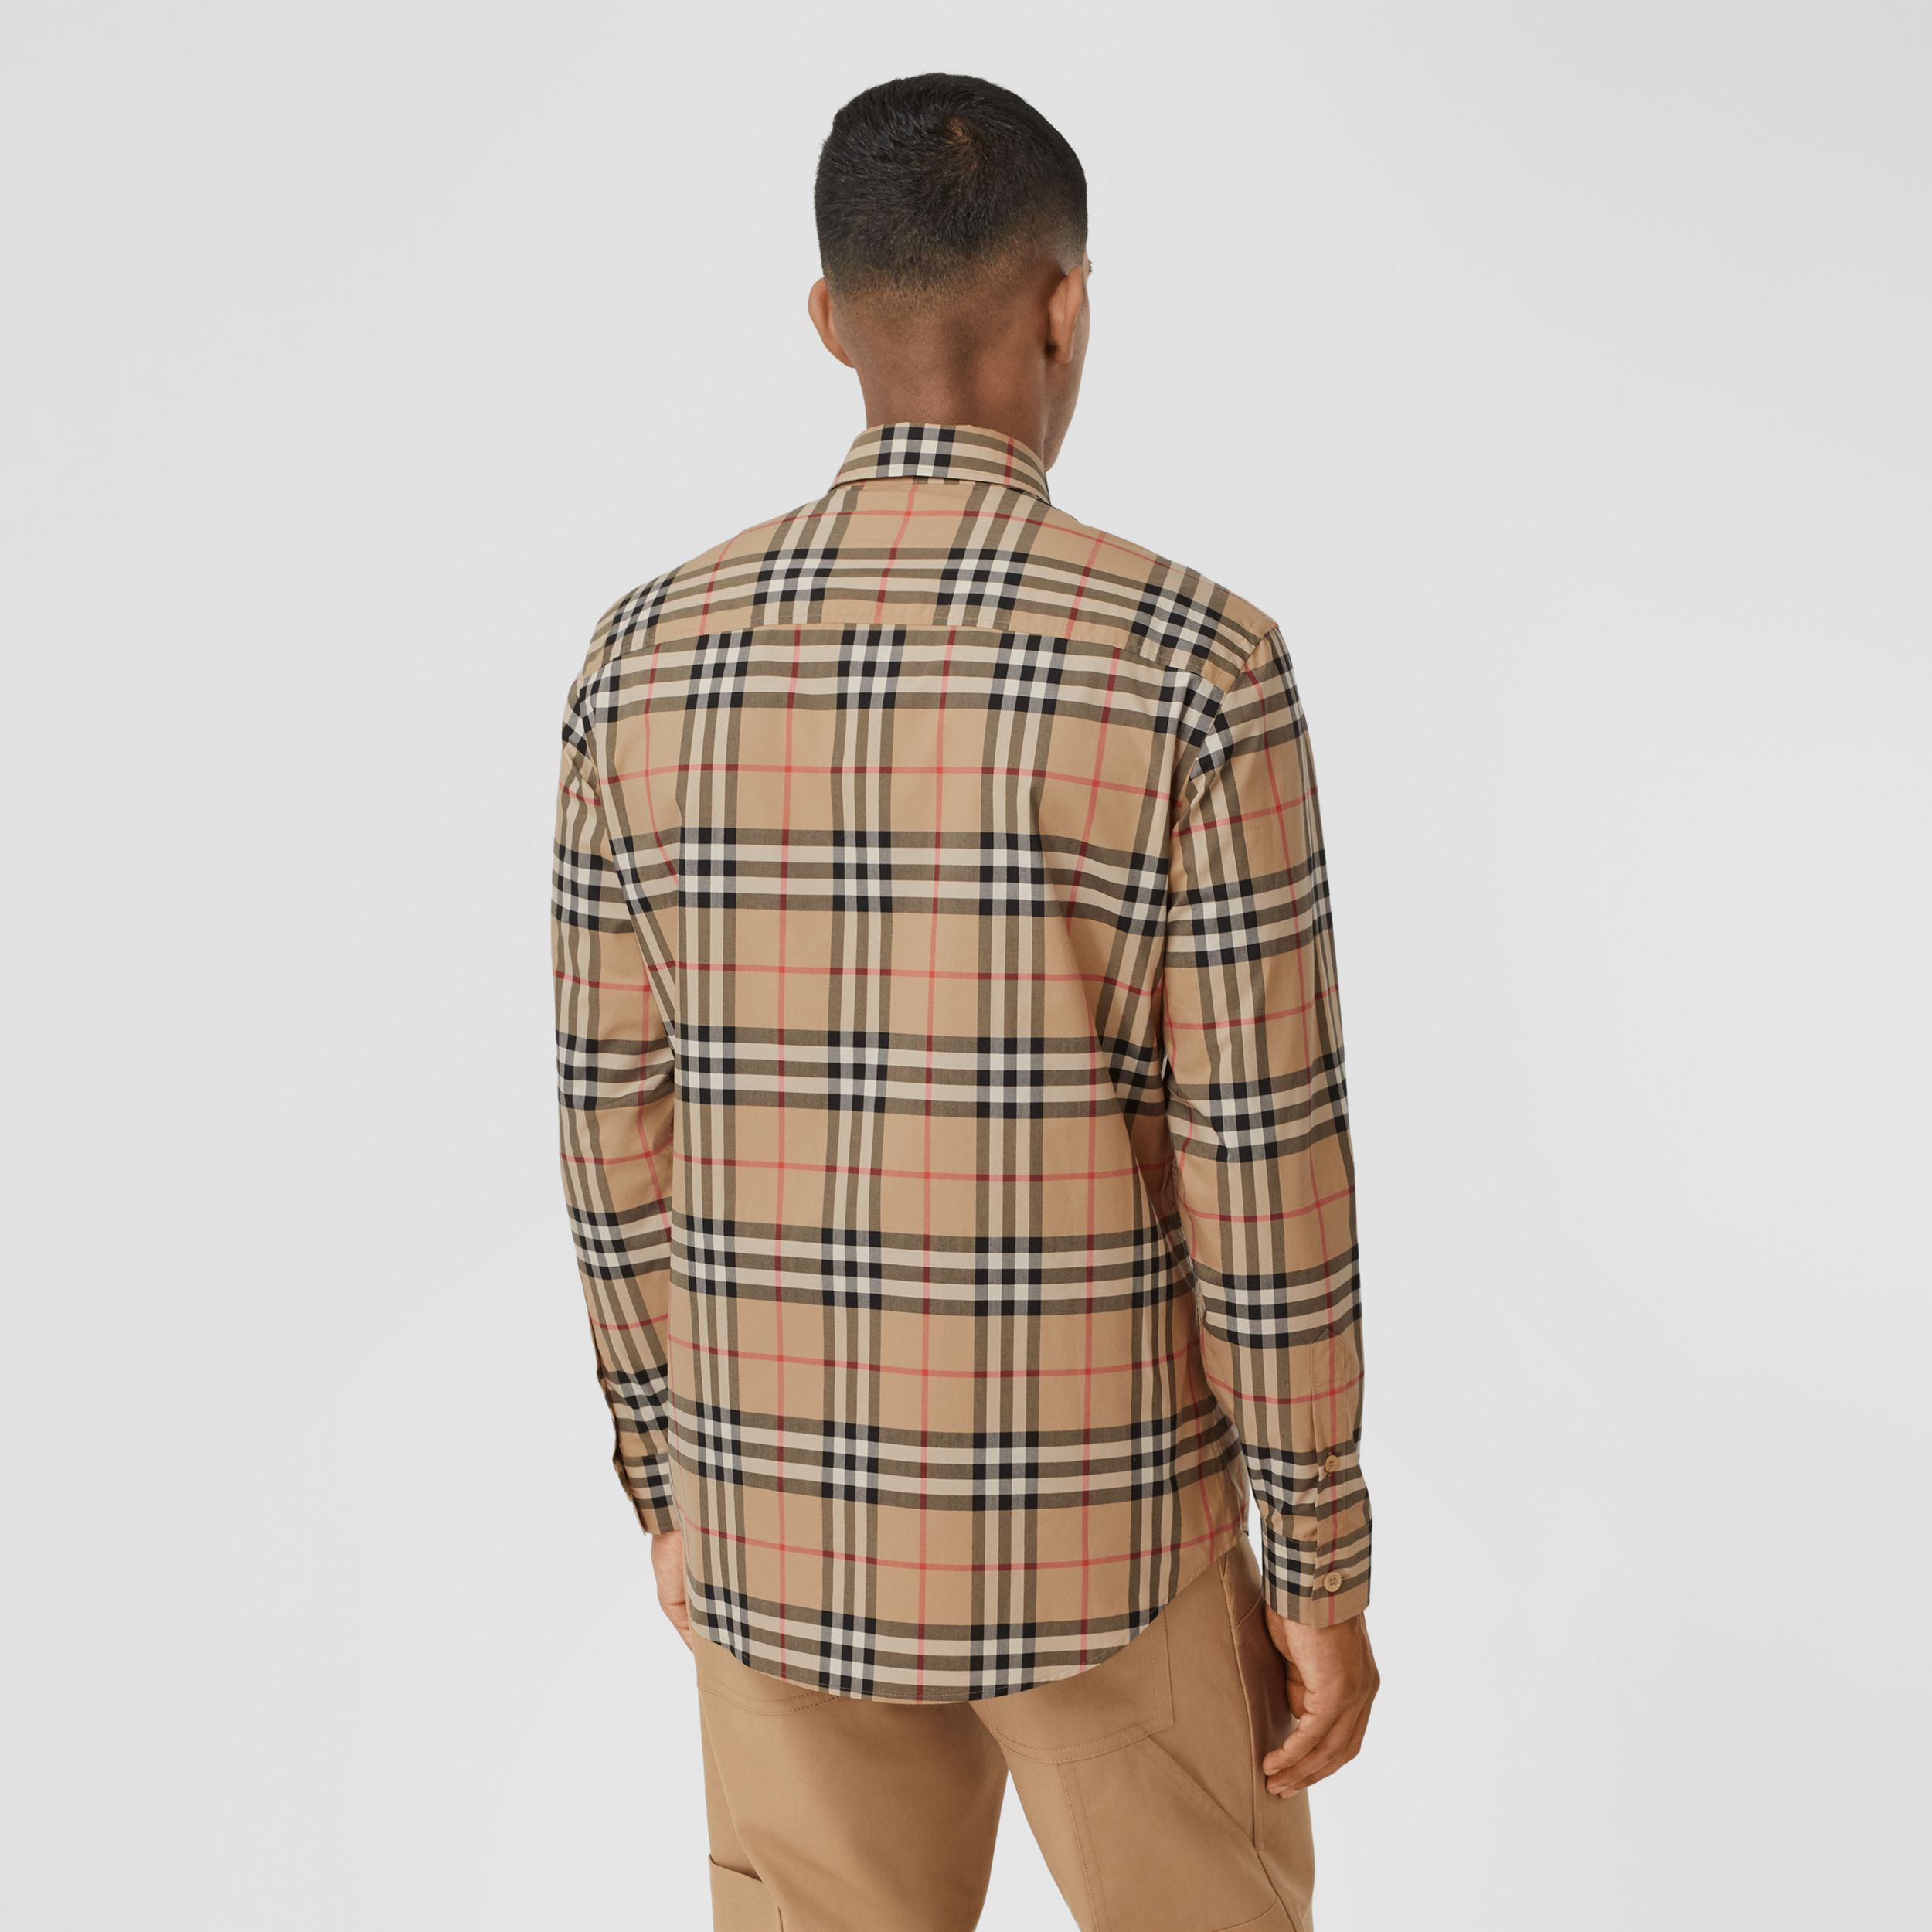 Logo Print Vintage Check Cotton Poplin Shirt in Archive Beige - Men | Burberry Australia - 3